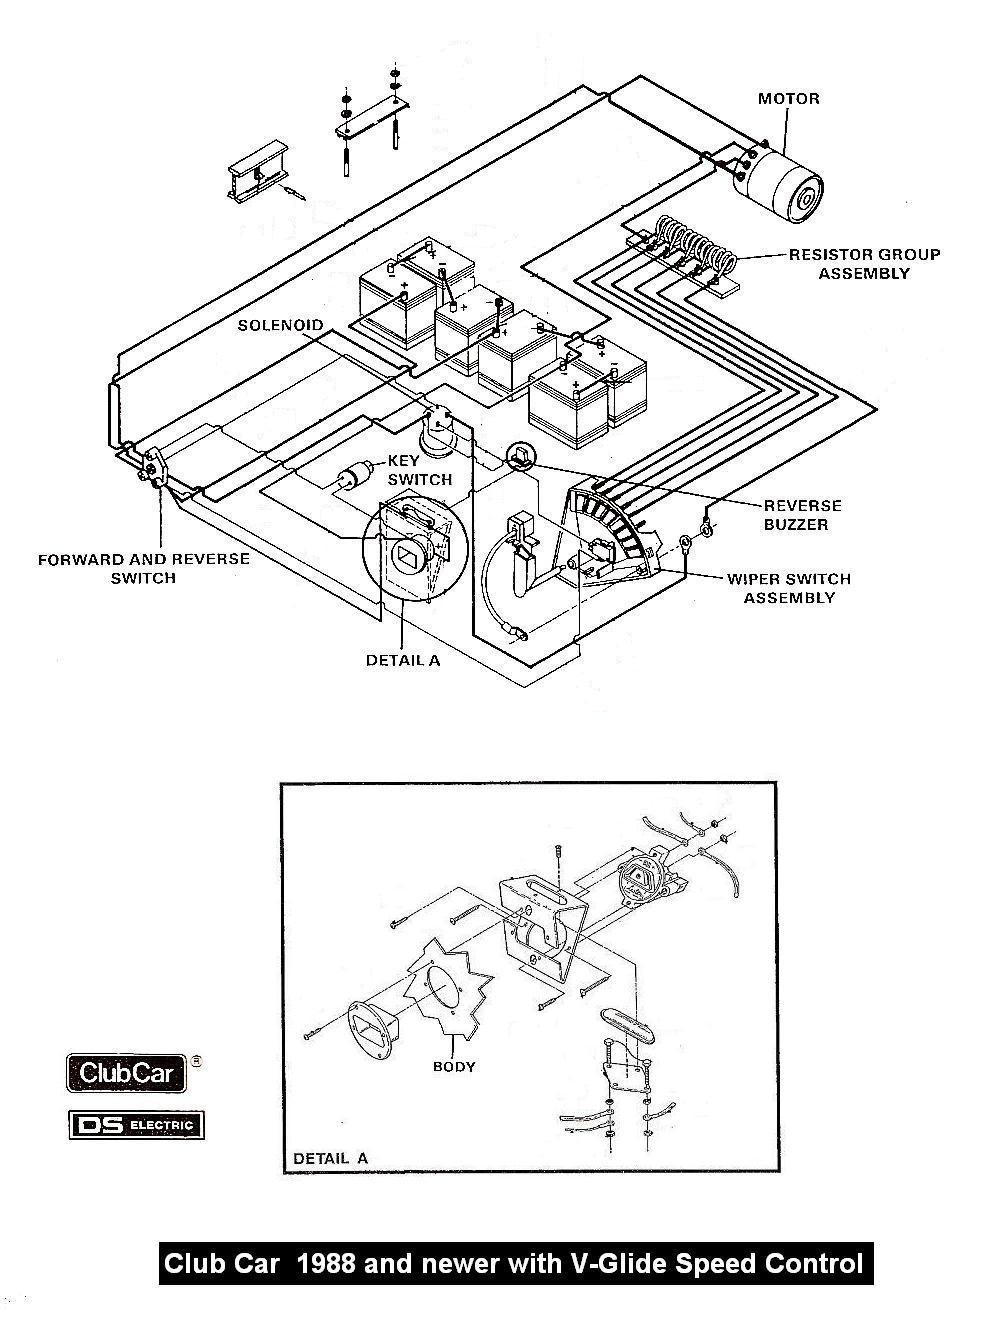 Wiring Diagram For Club Car Golf Cart